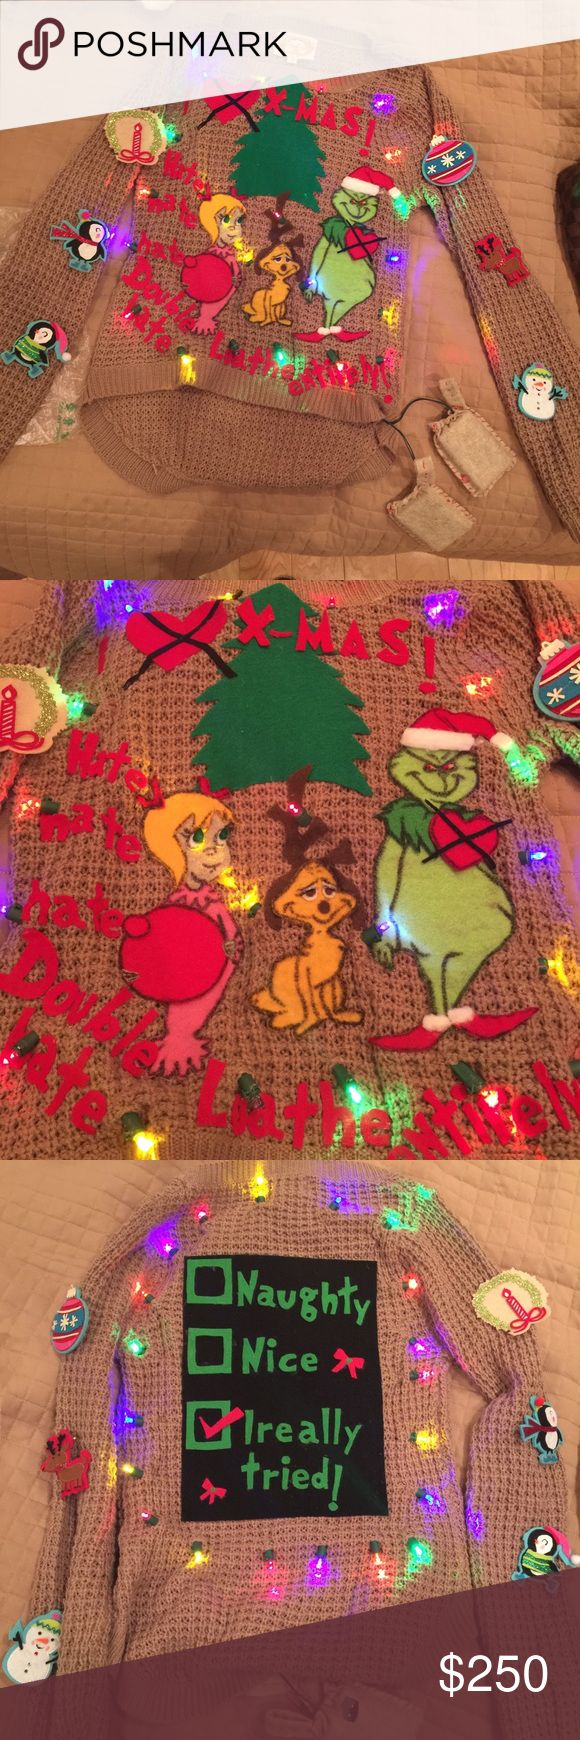 Grinch Sweater Make me an offer if you are interested! Great for grinchmas party, ugly Christmas sweater, grinch fans! Hand made, Cindy Lou hoo and max the dog. Batteries are in small pouch. Missing reindeer patch from right arm Sweaters Crew & Scoop Necks